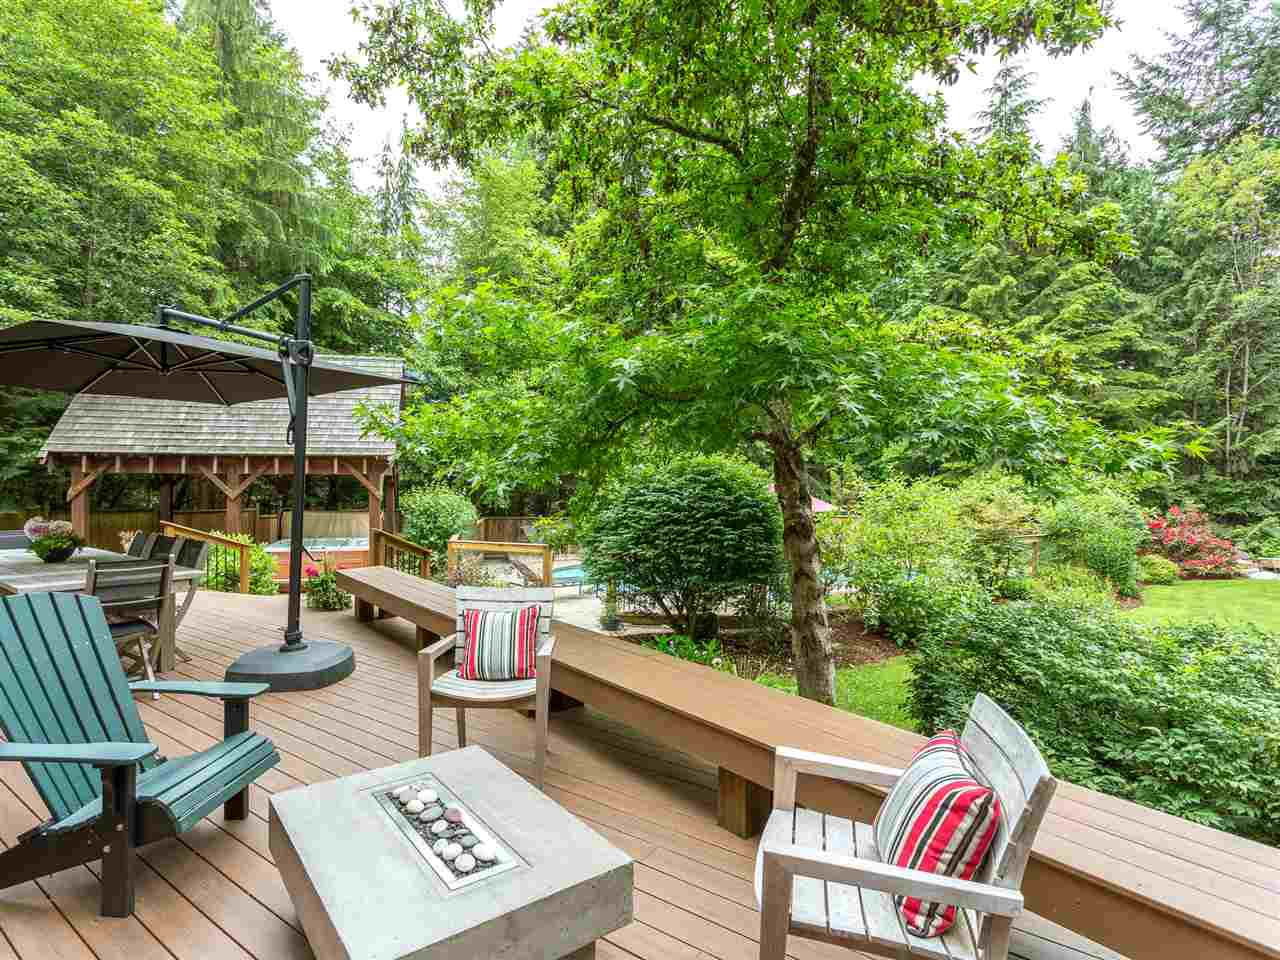 Photo 19: 2601 THE Boulevard in Squamish: Garibaldi Highlands House for sale : MLS® # R2176534